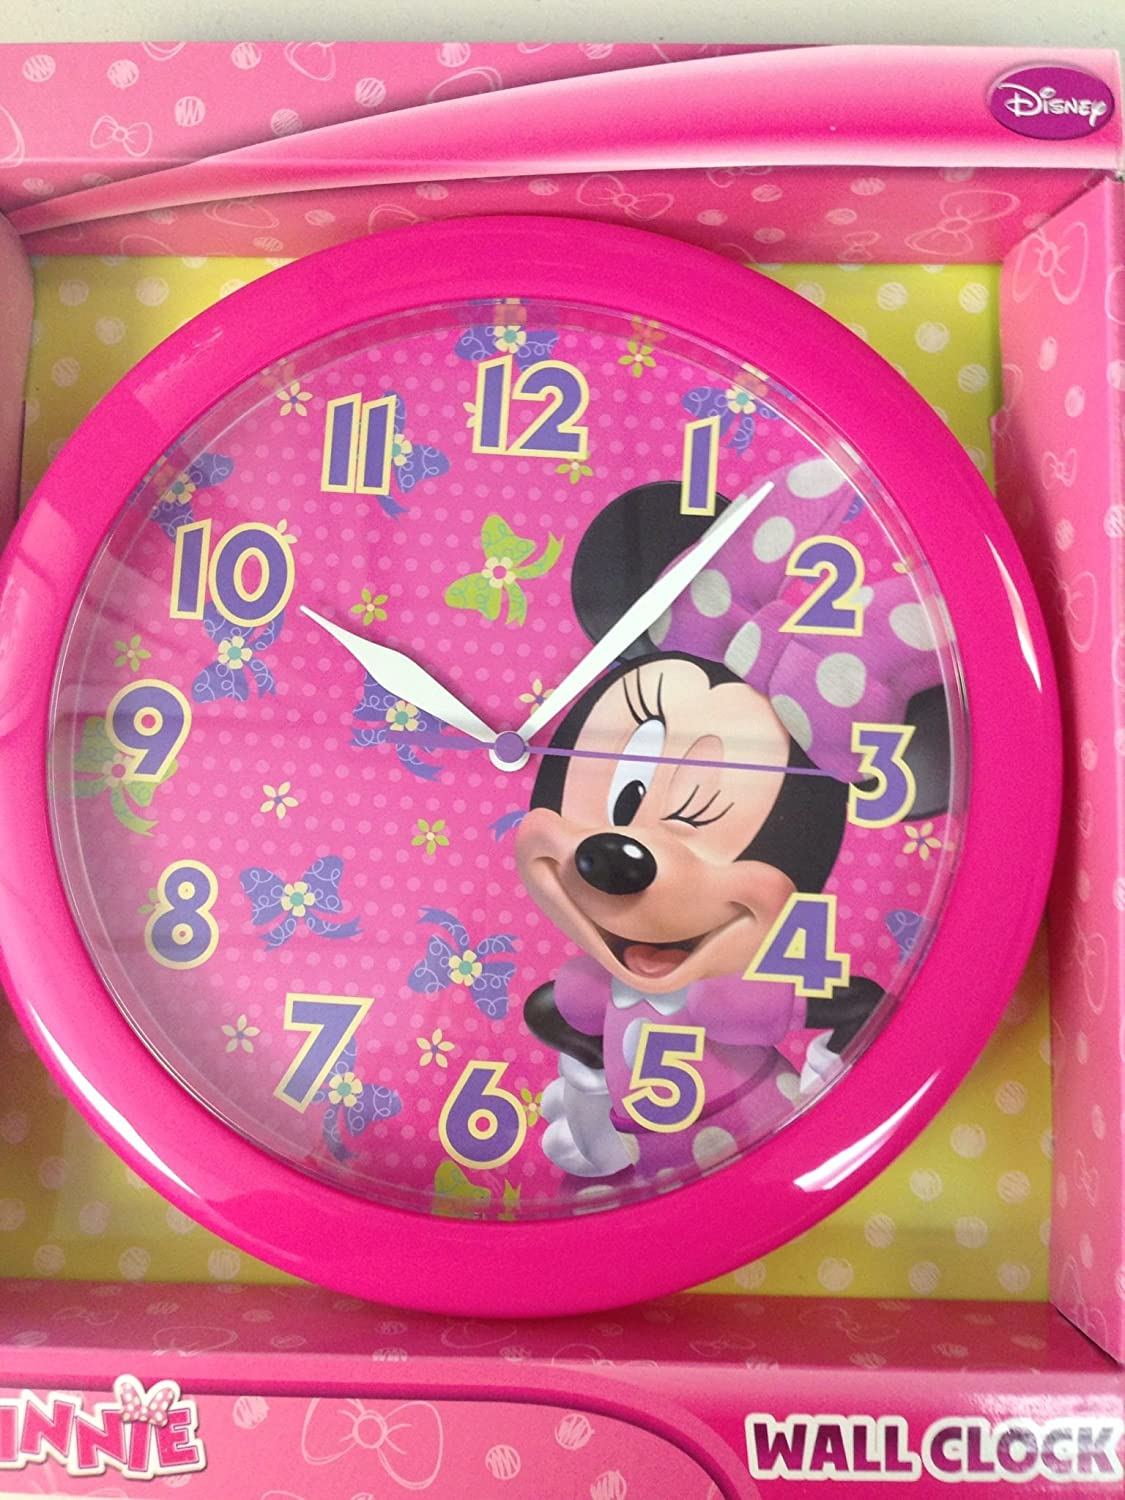 Amazon minnie bowtique disney 10 wall clock quartz amazon minnie bowtique disney 10 wall clock quartz accuracy easy wall mounting battery operated requires 1 aa battery not included home amipublicfo Image collections